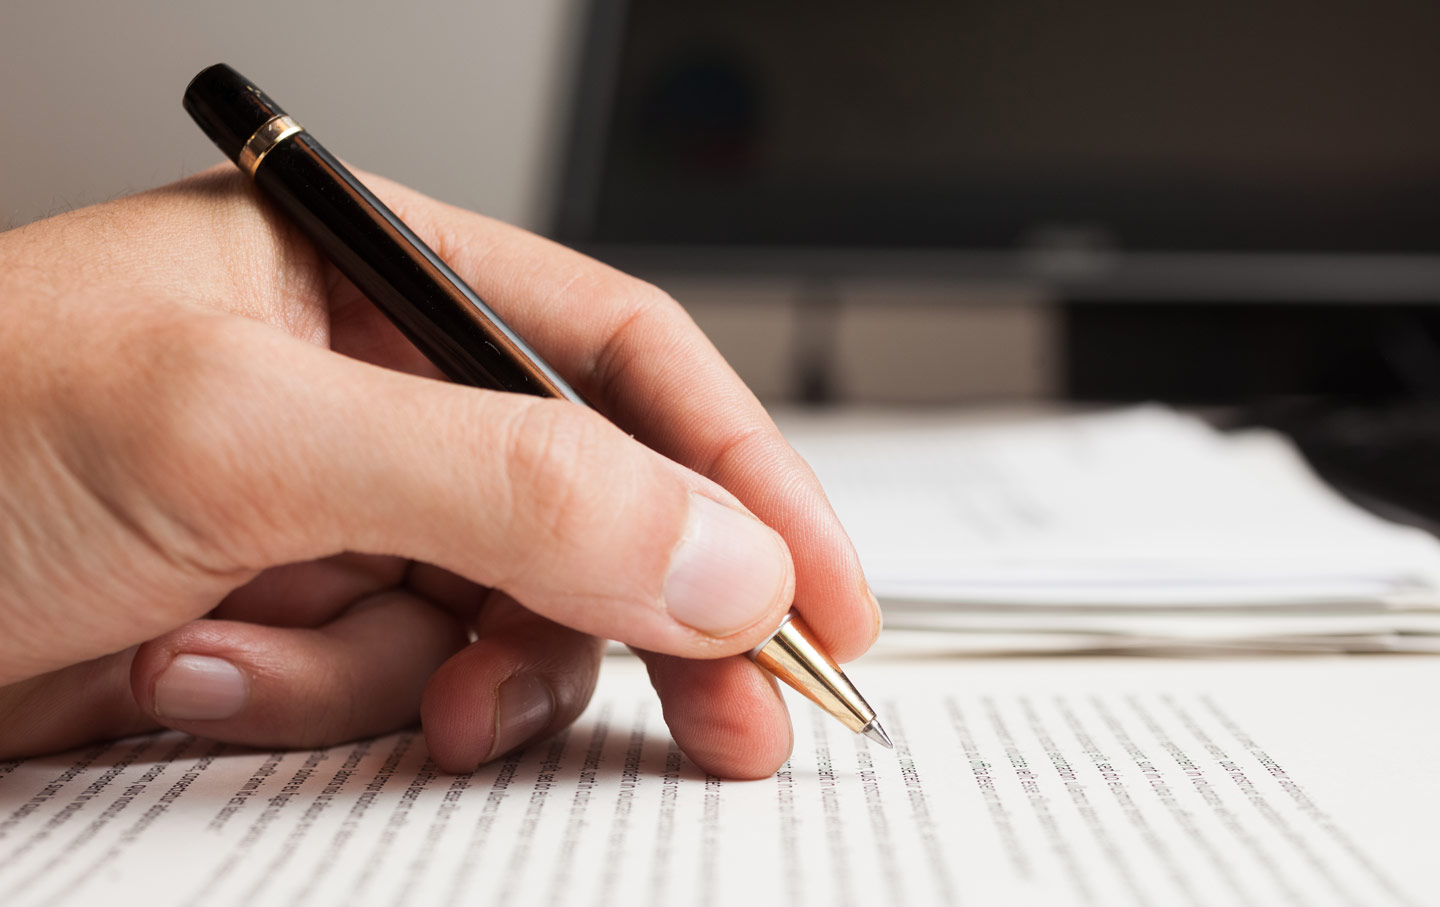 Learn How to Write Fast Professionally and Make More Money